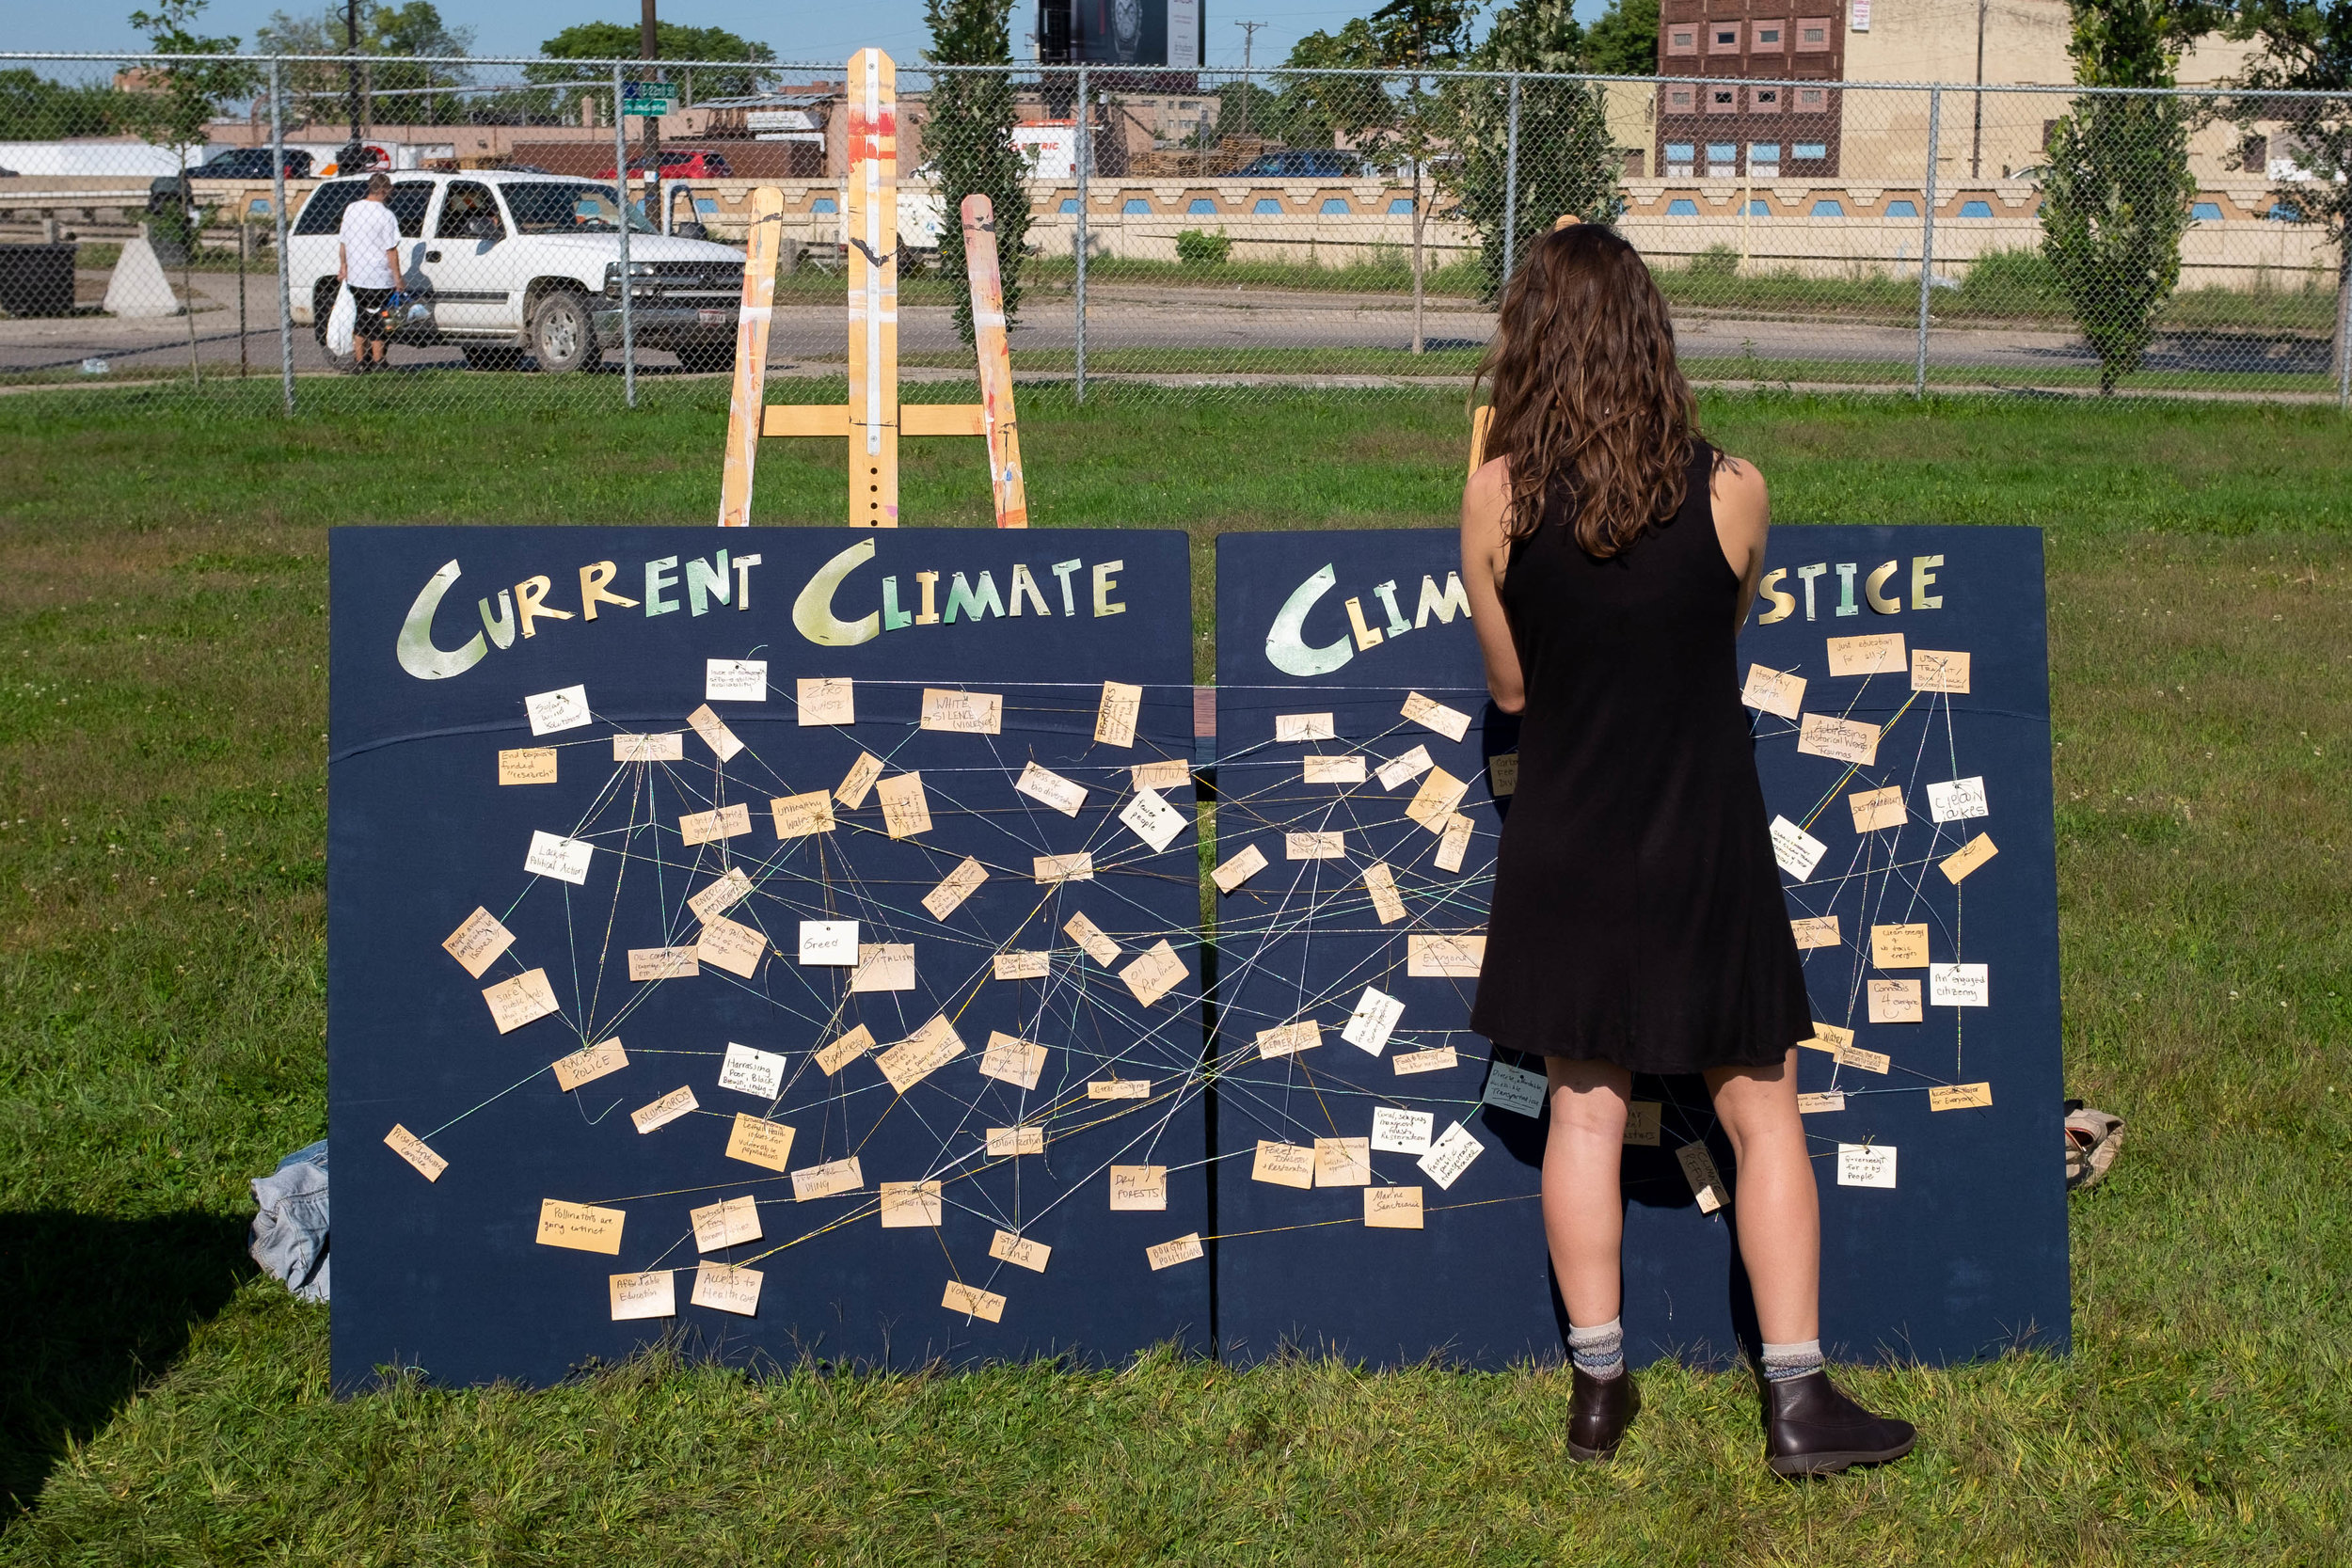 A woman interacts with a display at a climate change summit at East Phillips Park in Minneapolis on September 8, 2019.